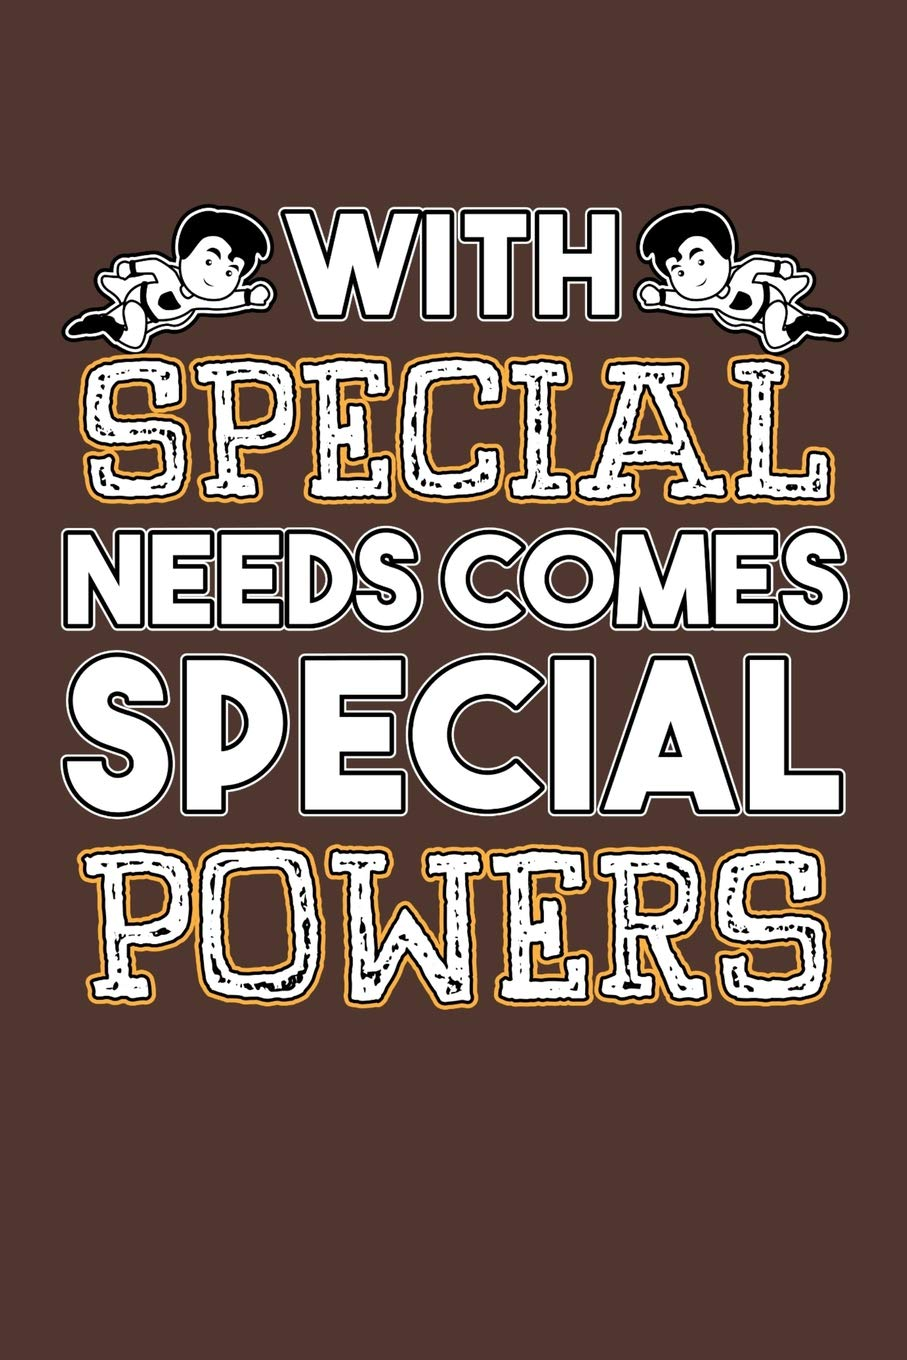 With Special Needs Comes Special Powers Autism Awareness Notebook Journal Gift For Caregivers Of Autistic Kids Or Adults 100 Lined Pages To Jot Down Notes Publishing Tsexpressive 9781097361489 Amazon Com Books